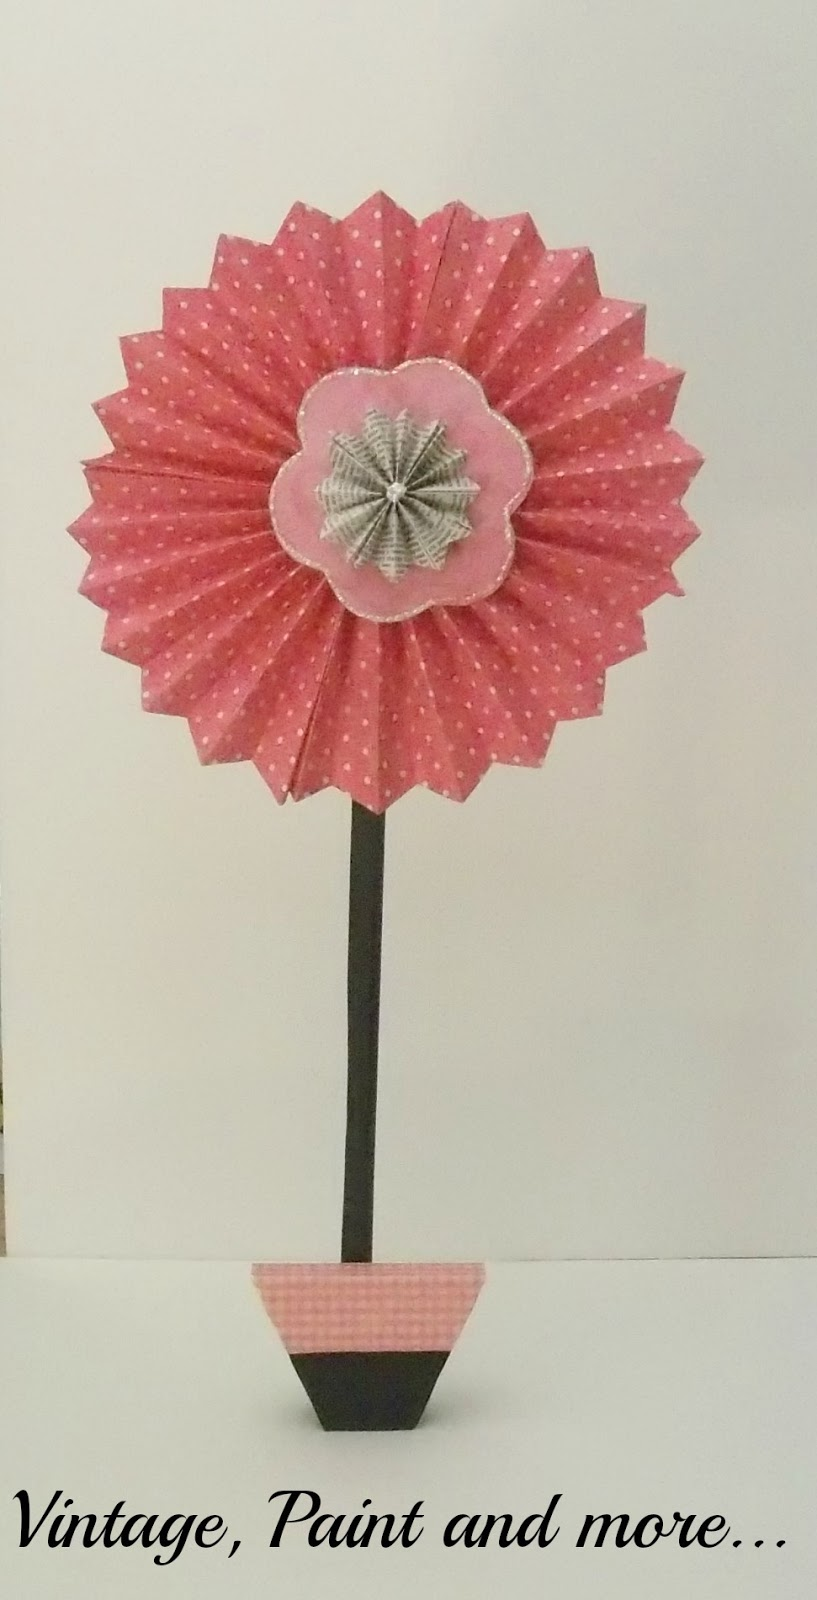 Vintage, Paint and more... pinwheel flower made from scrapbook paper, glitter and wood scraps